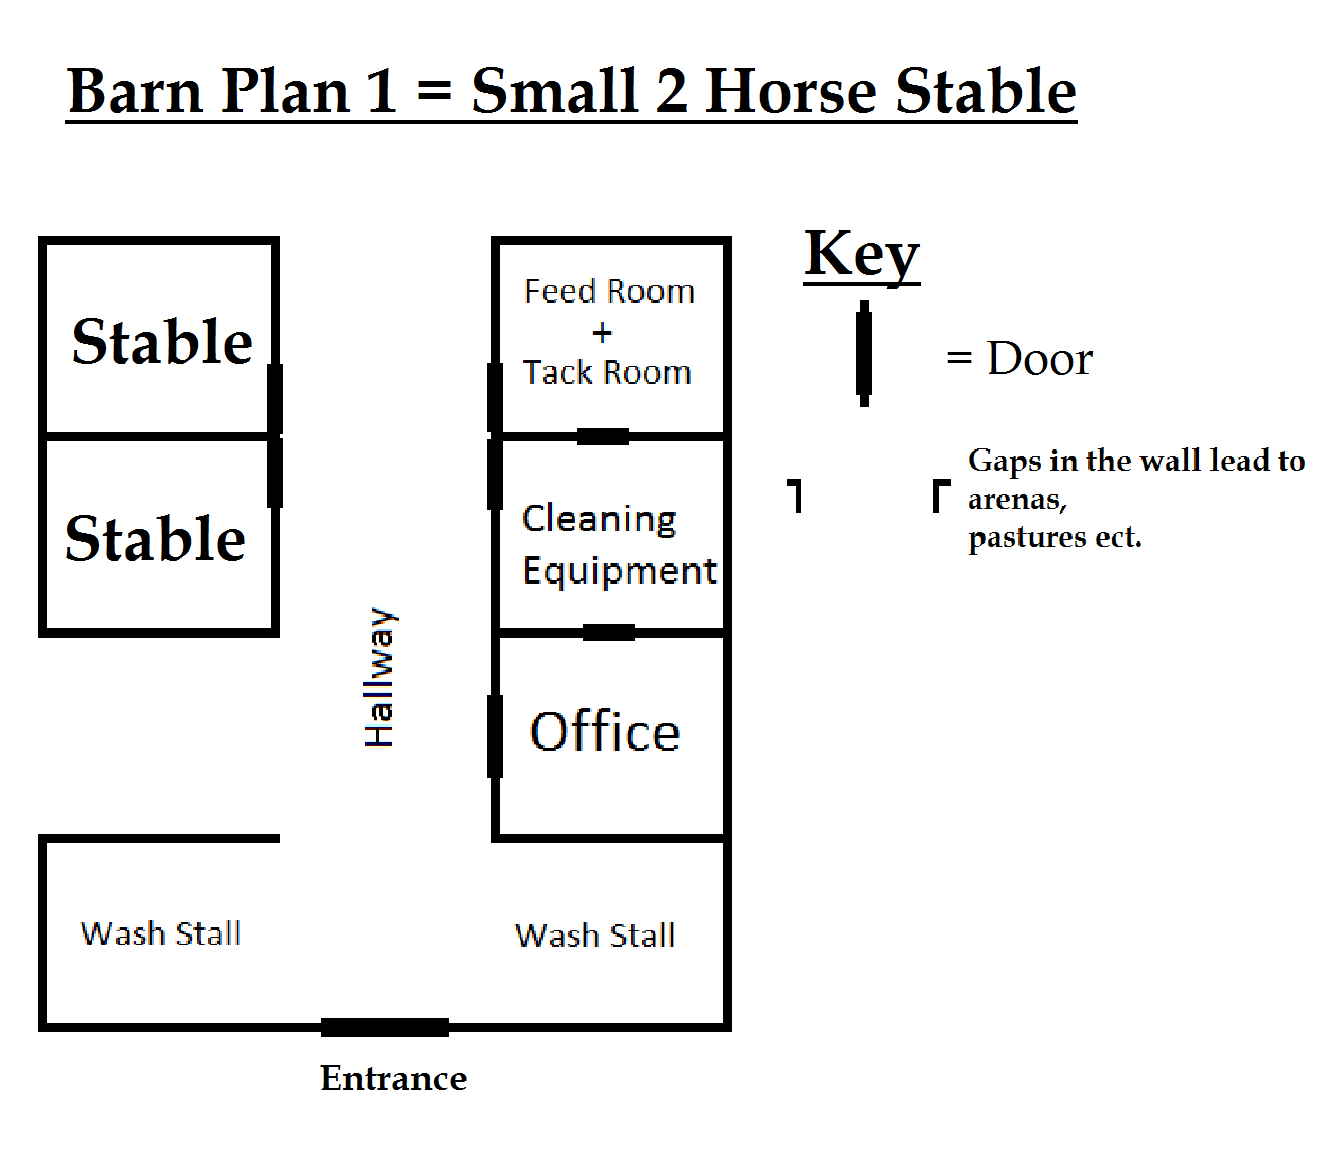 Barn Plan Small 2 Horse Stable By Wolfdemondstar On